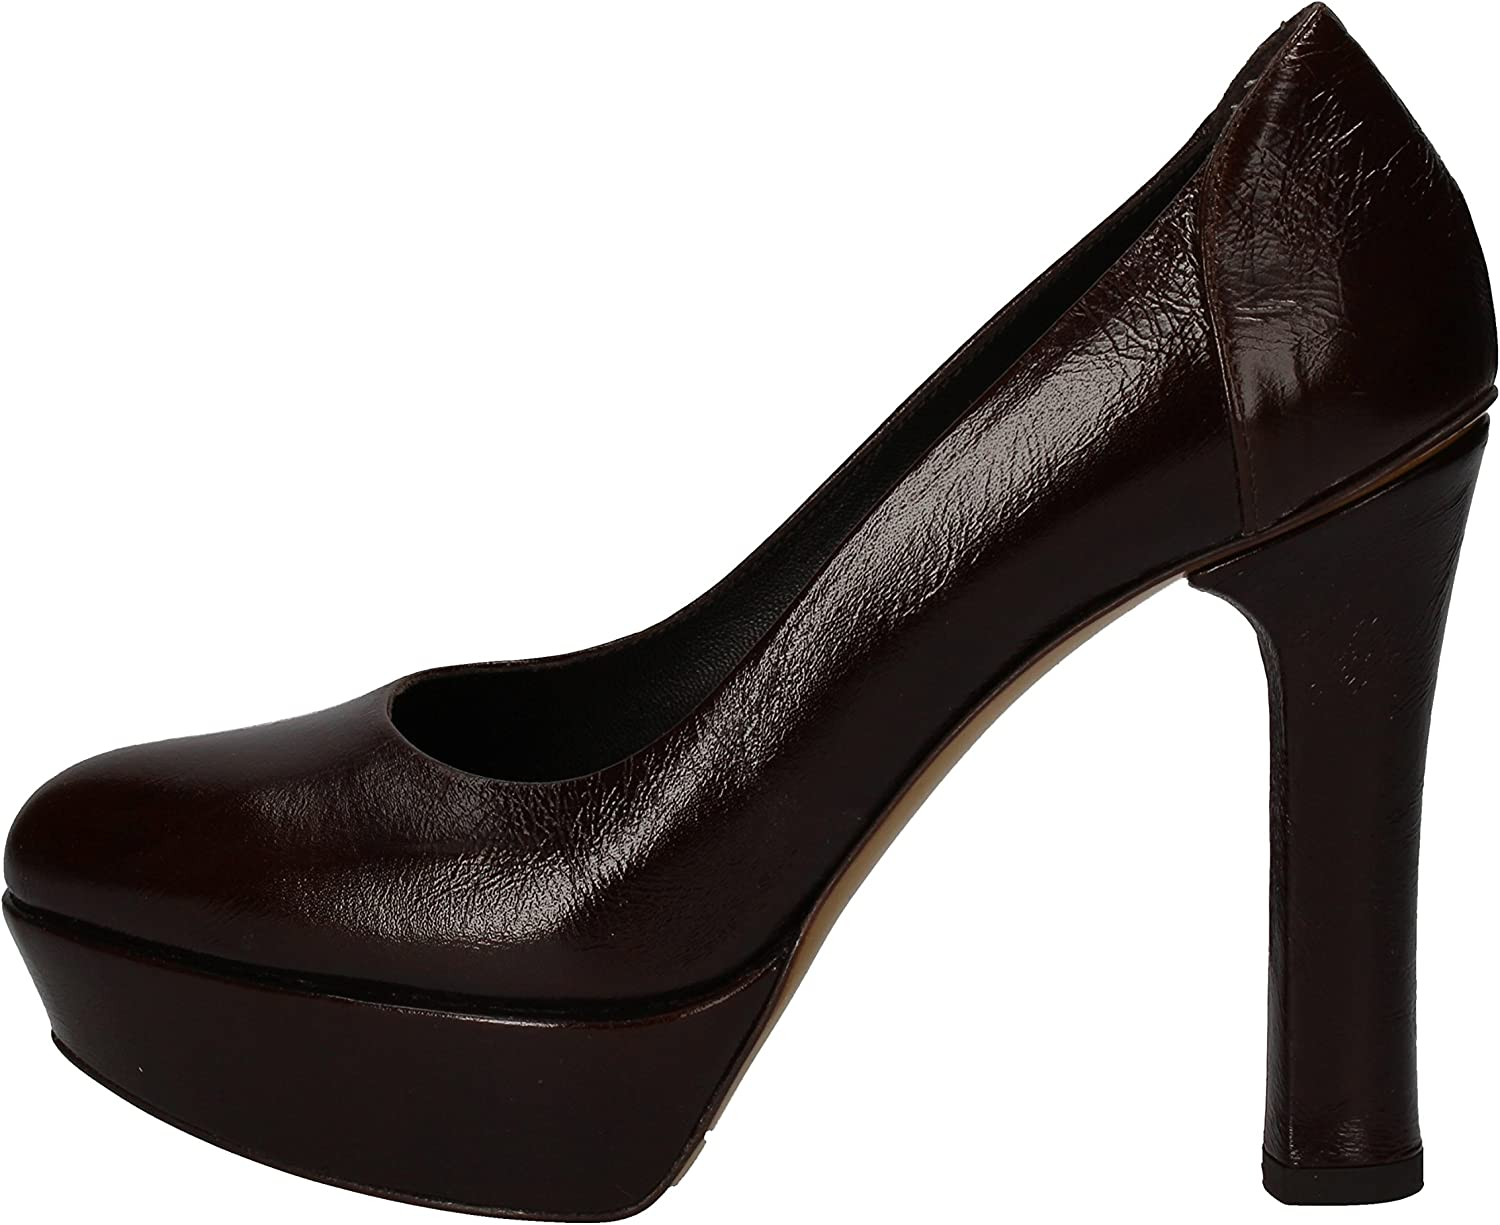 FABI Pumps-shoes Womens Leather Brown